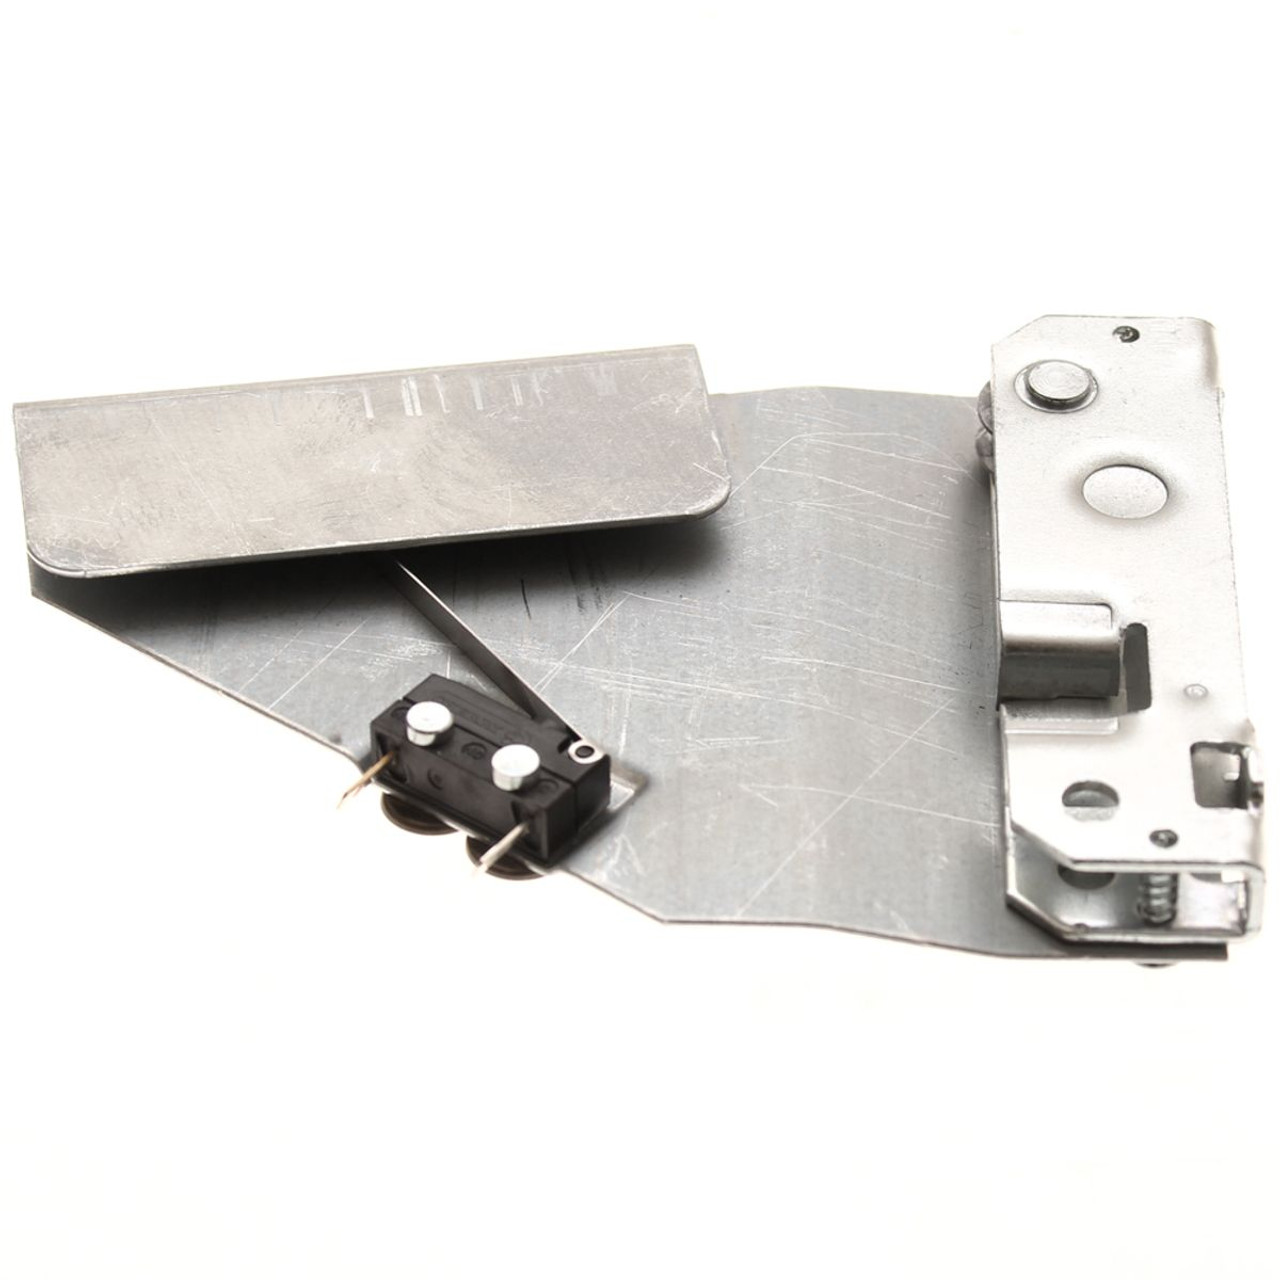 Thetford spare door microswitch shutoff for grill